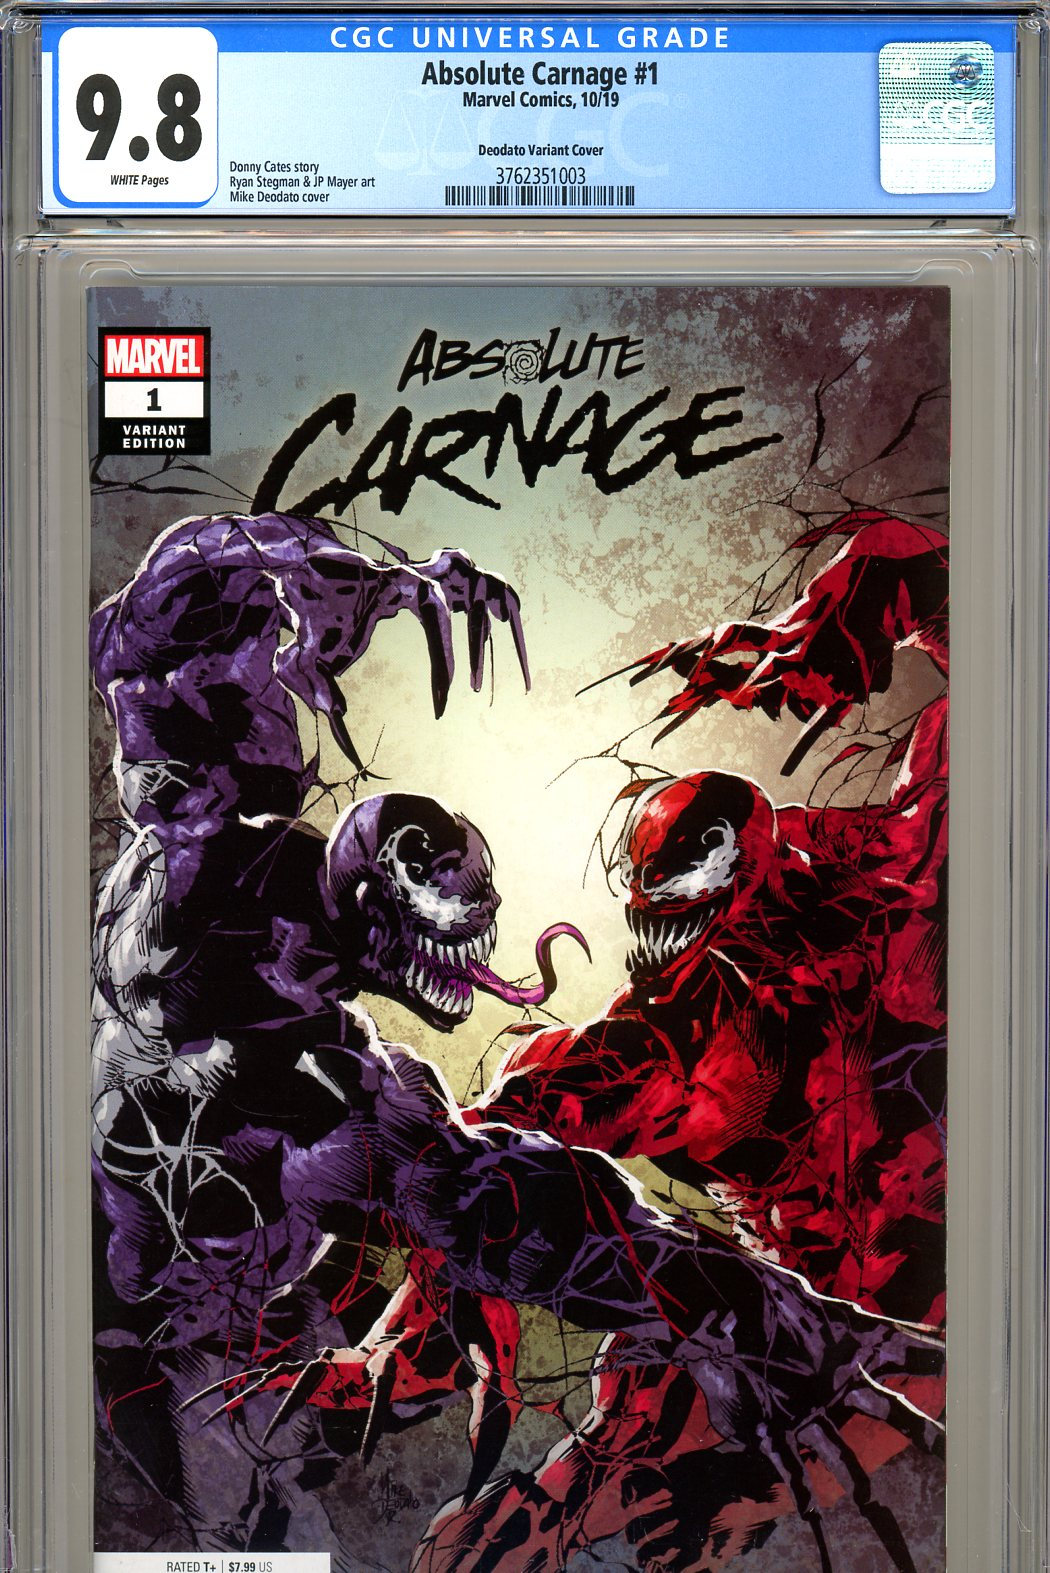 Absolute Carnage #1 CGC 9.8 w Deodato Variant Cover